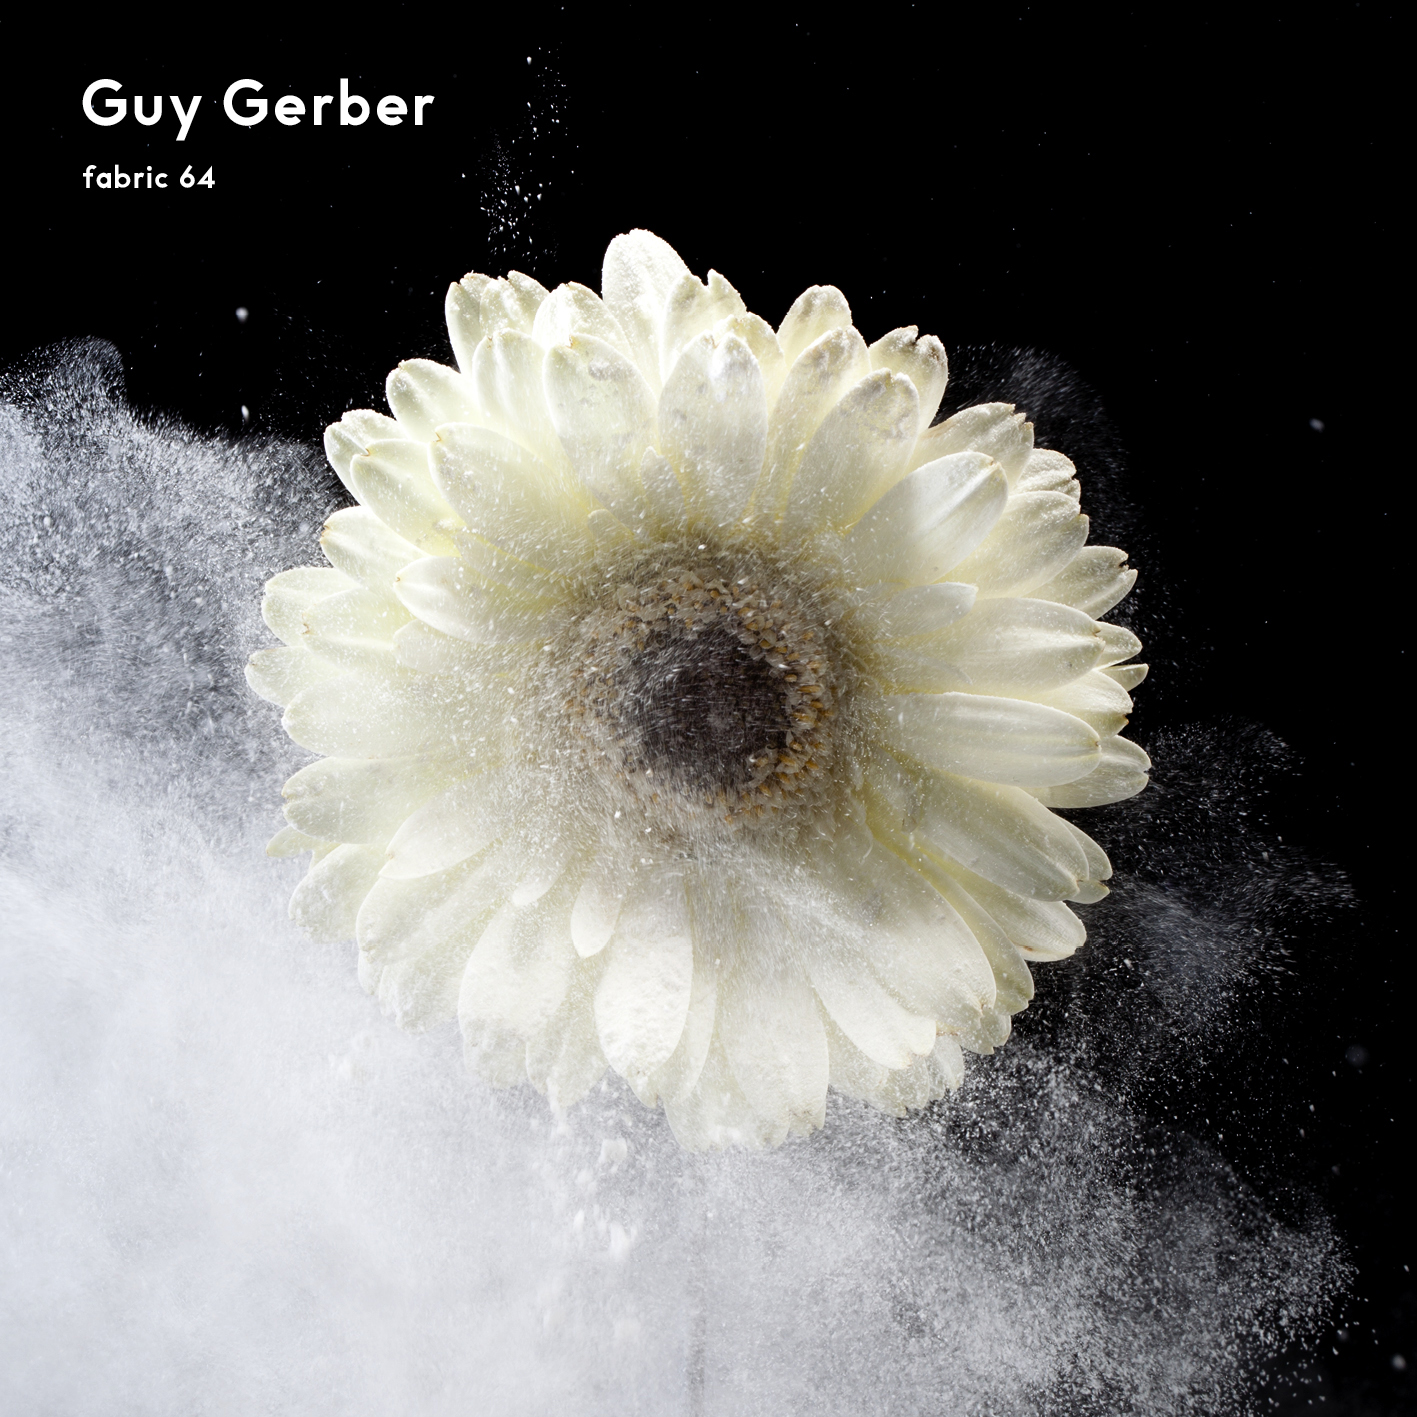 Guy Gerber mixt Fabric 64